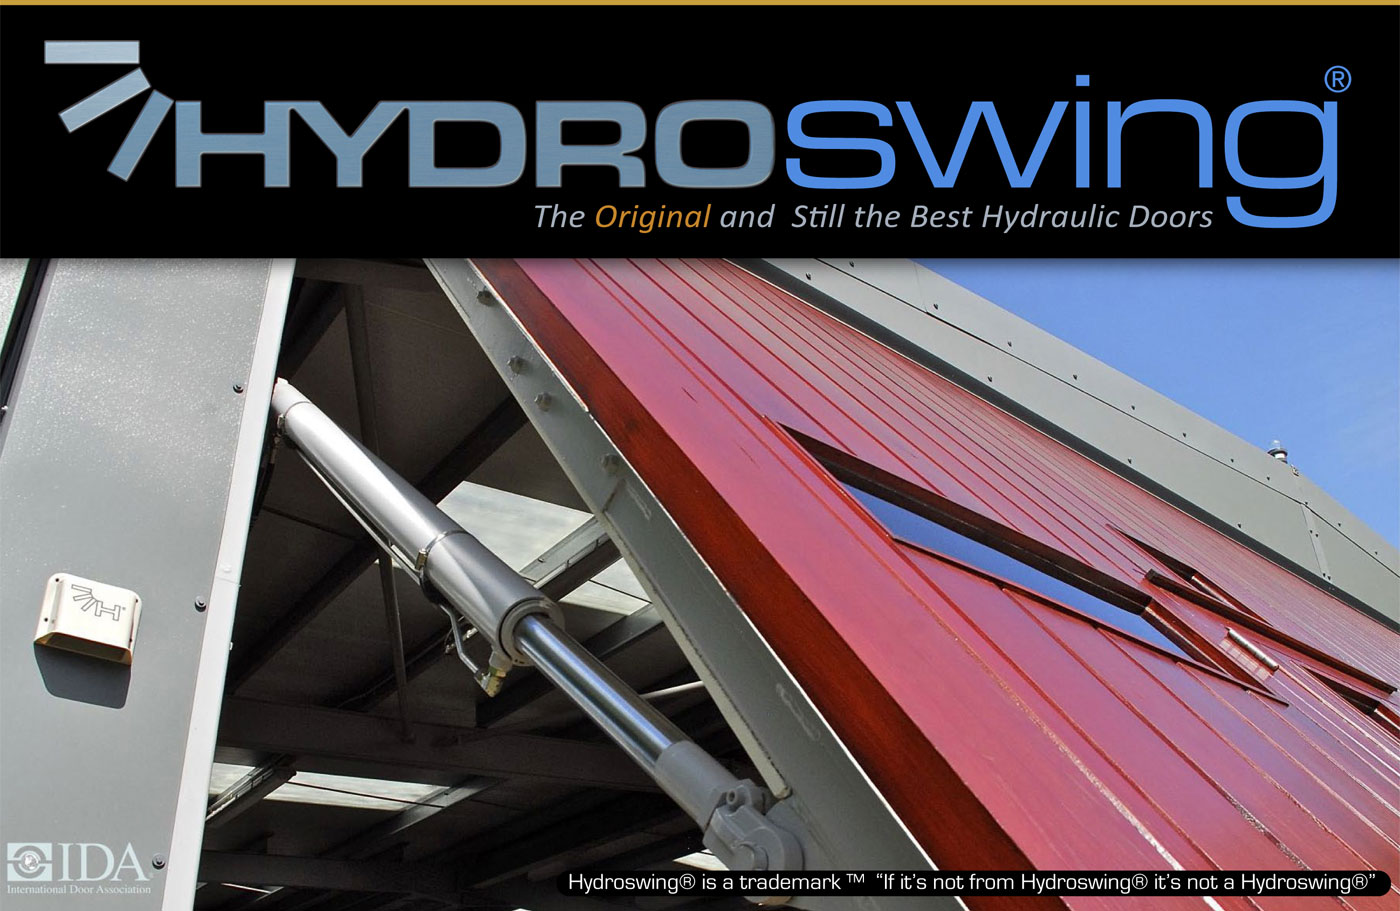 replace dangerous bifold door with quality hydroswing hydraulic door